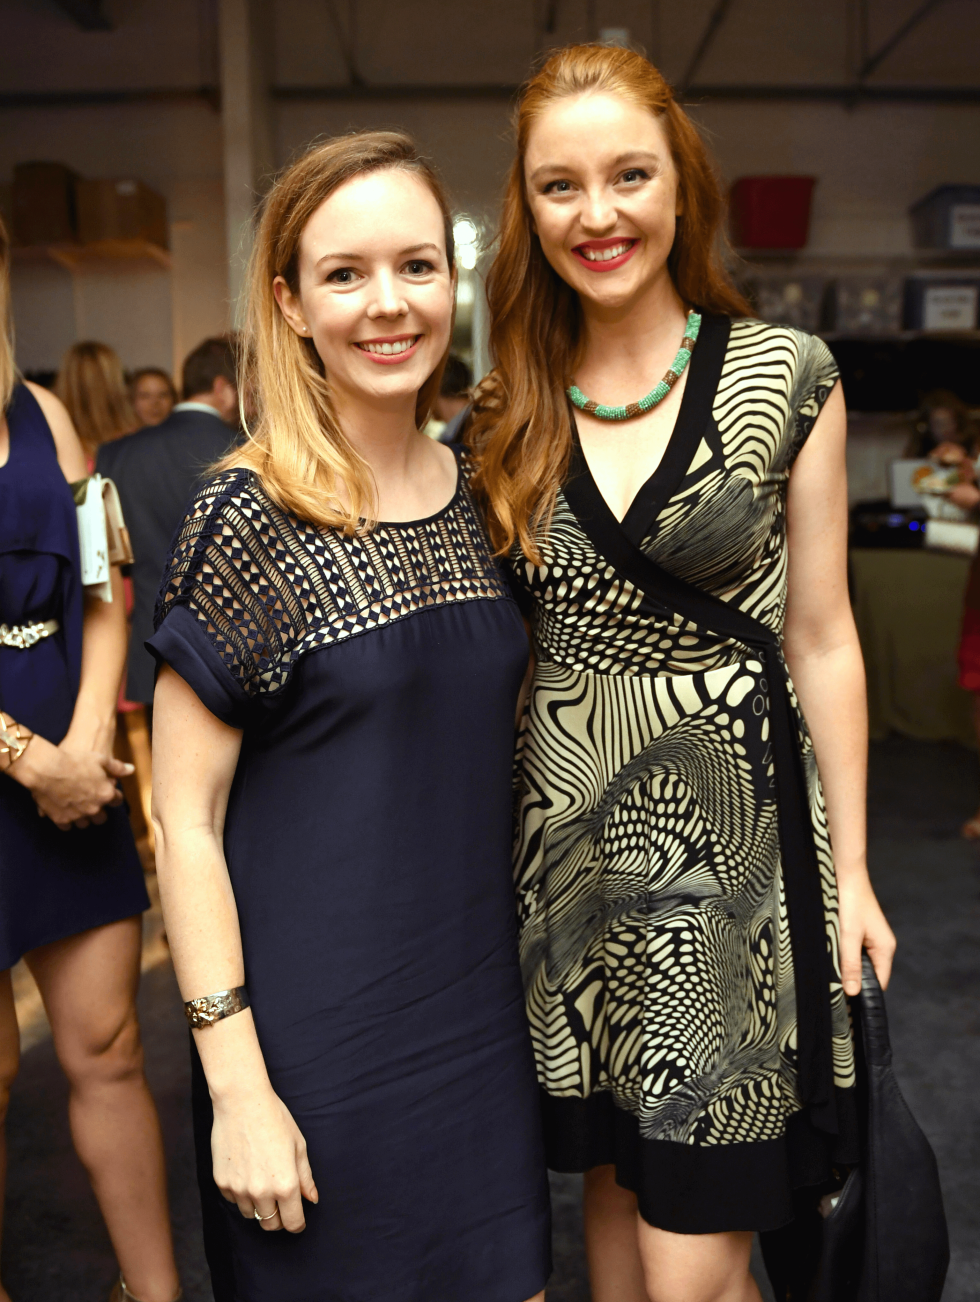 Houston, Dress for Success Cuisine for a Cause, Oct. 2016, Cynthia Miller, Paige Gallaspy